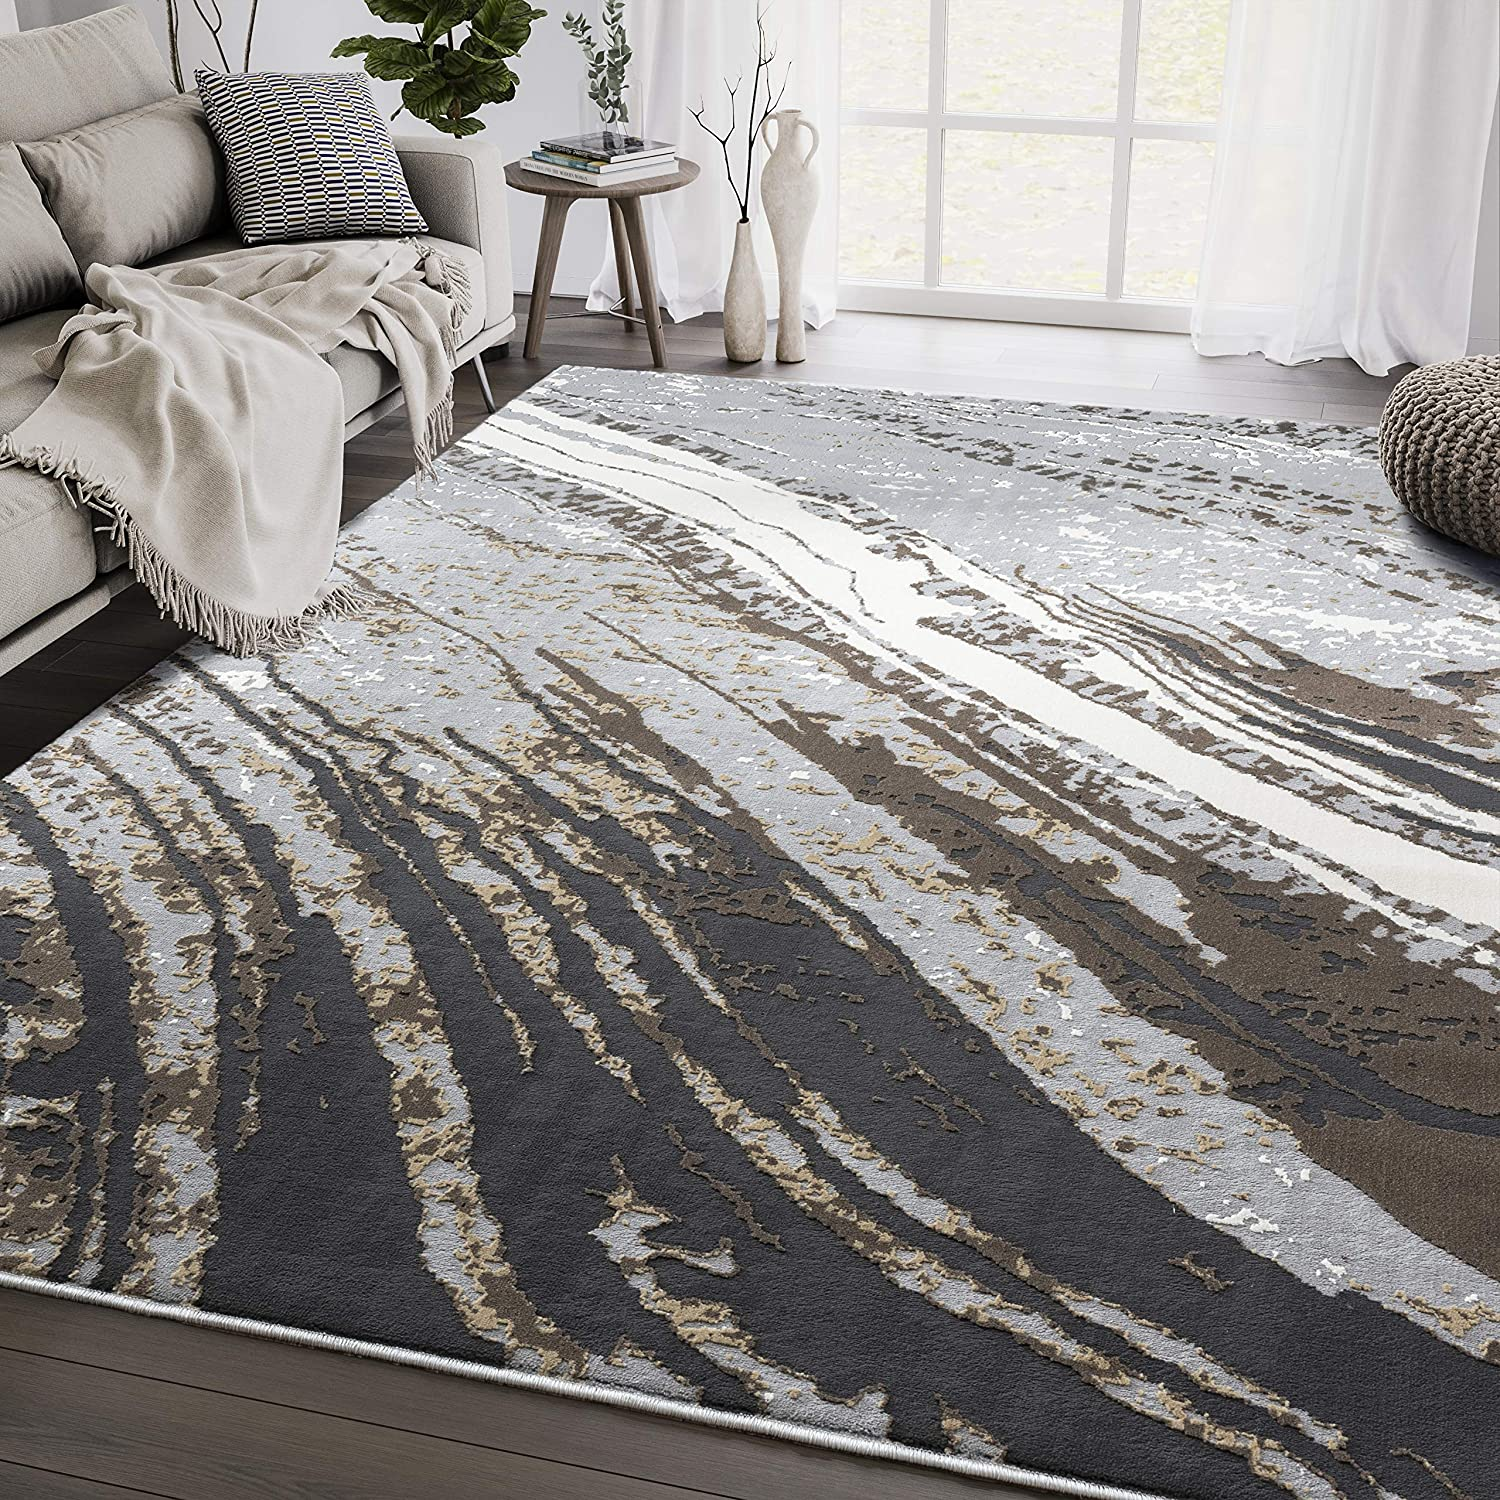 Free shipping / New Modern Grey Marble 4'x6' New products world's highest quality popular Area Rug Rugs Aspen by Abani Collection